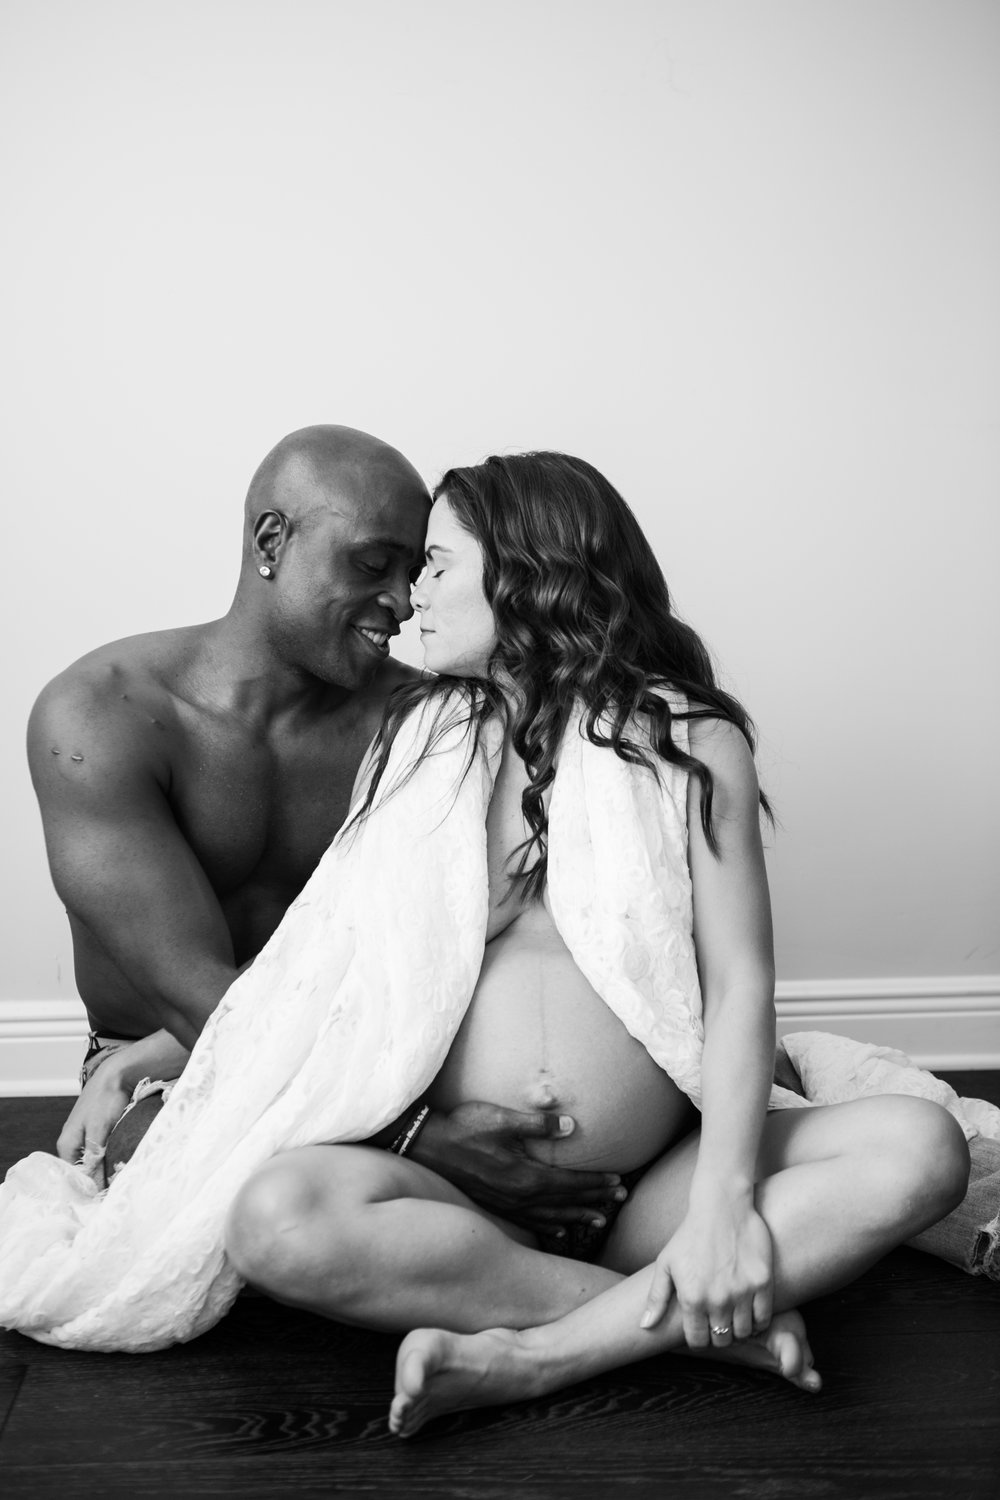 11_18_16 Cienne and Bobby Tampa Lifestyle Maternity Session 001.jpg